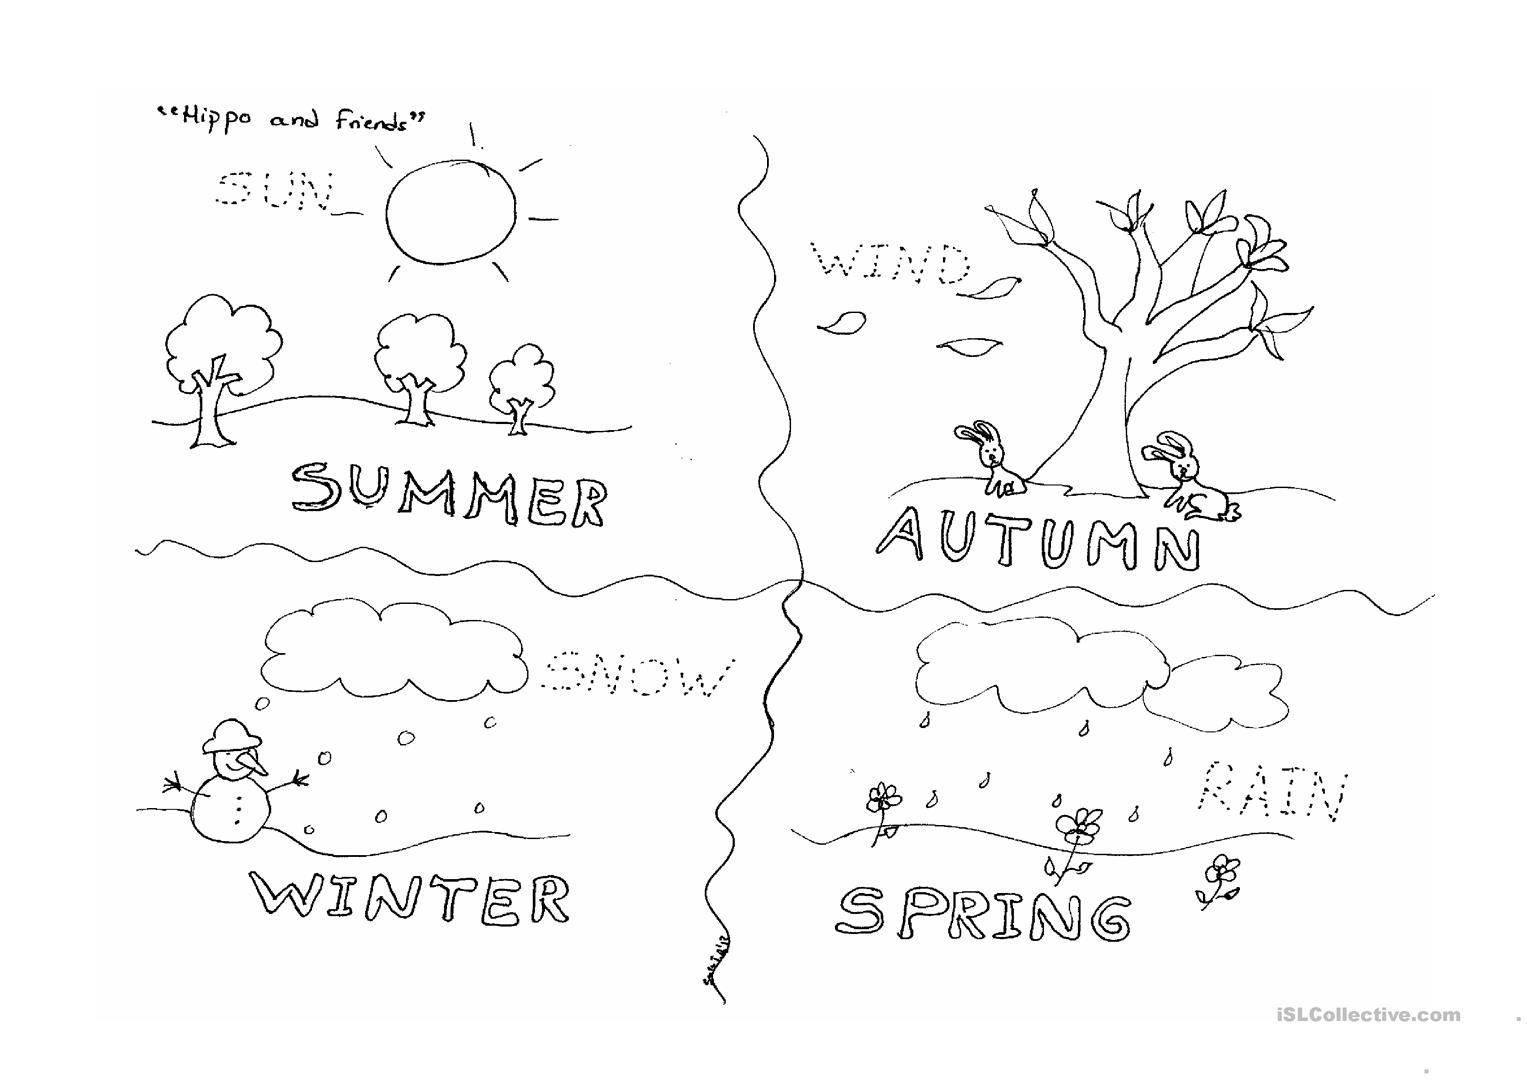 Worksheets Seasons Worksheets four seasons worksheet free esl printable worksheets made by full screen